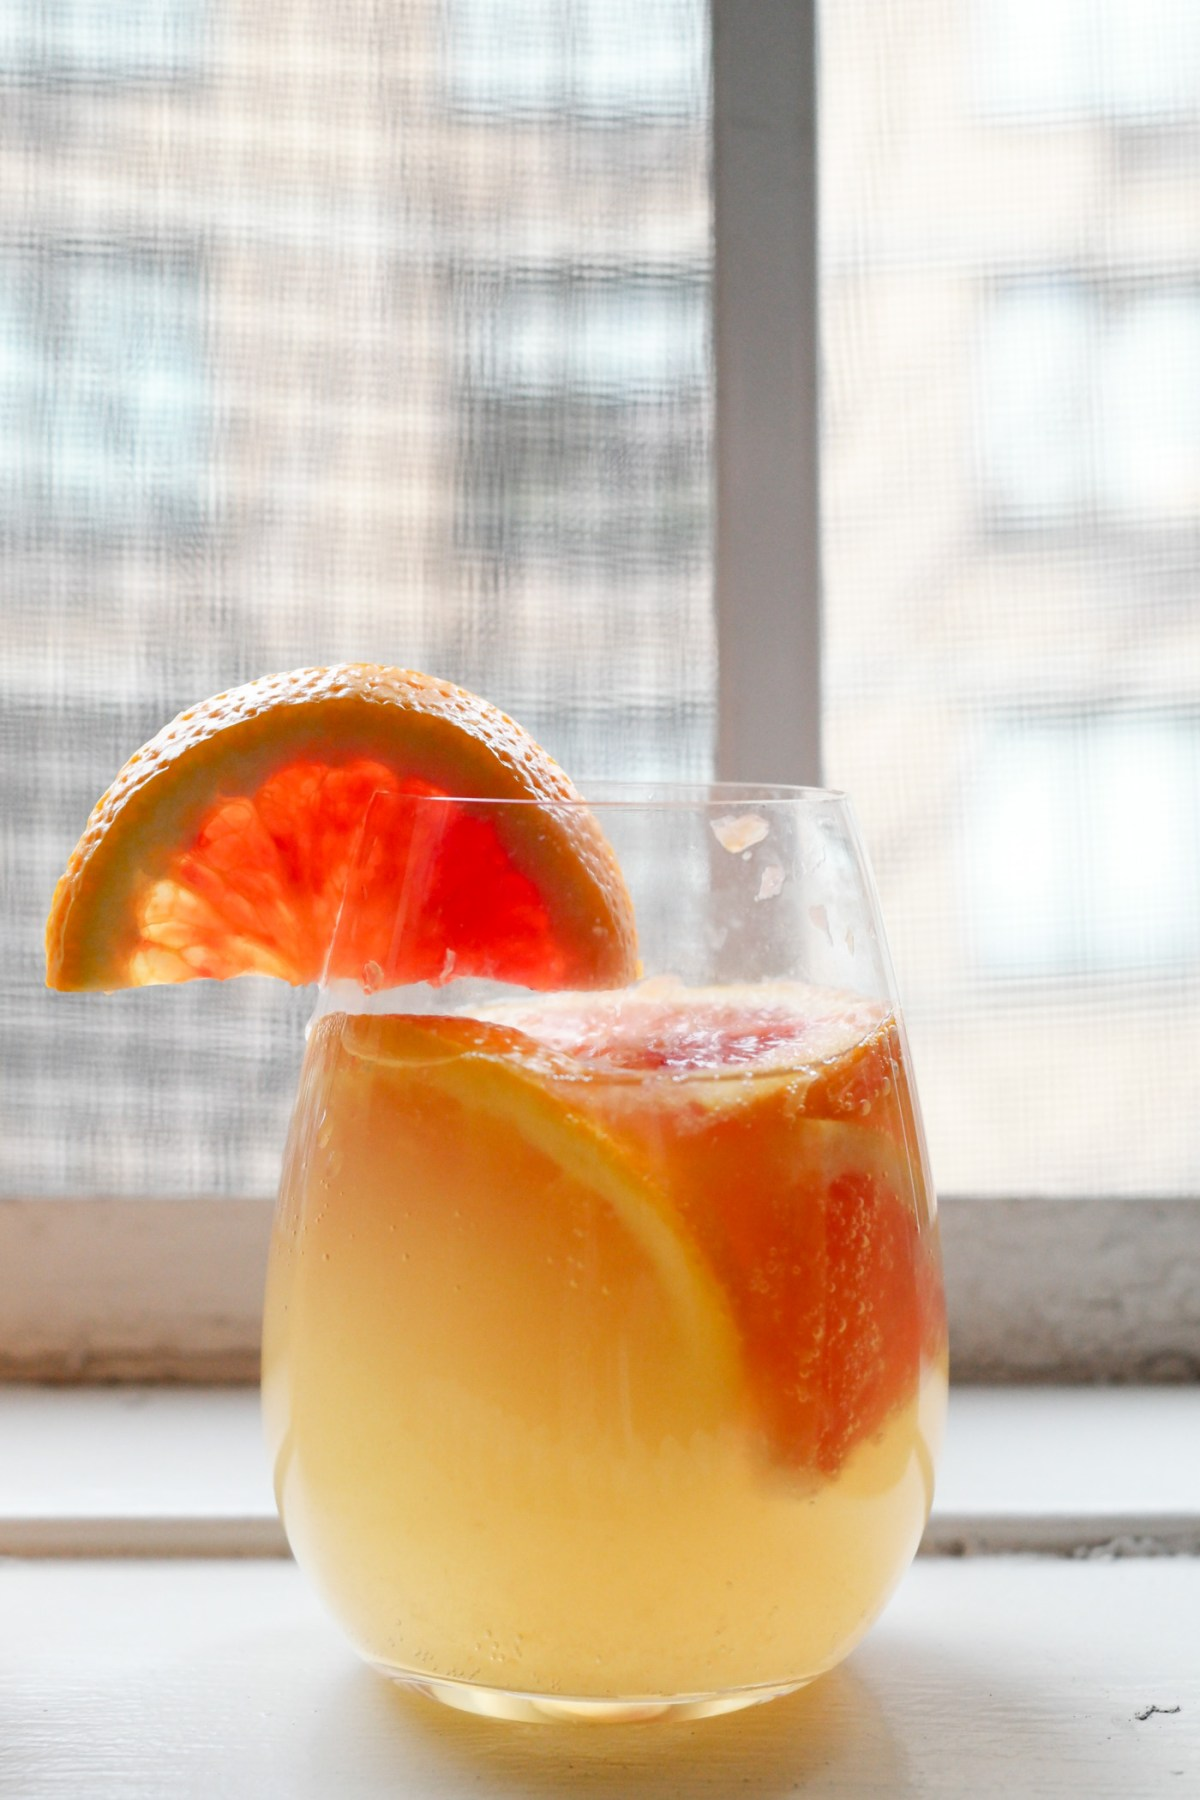 LOOK AT THAT GLASS! SO BRIGHT AND COLORFUL AND DELICIOUS. and just make this white citrus sangria because YUM.   thepikeplacekitchen.com